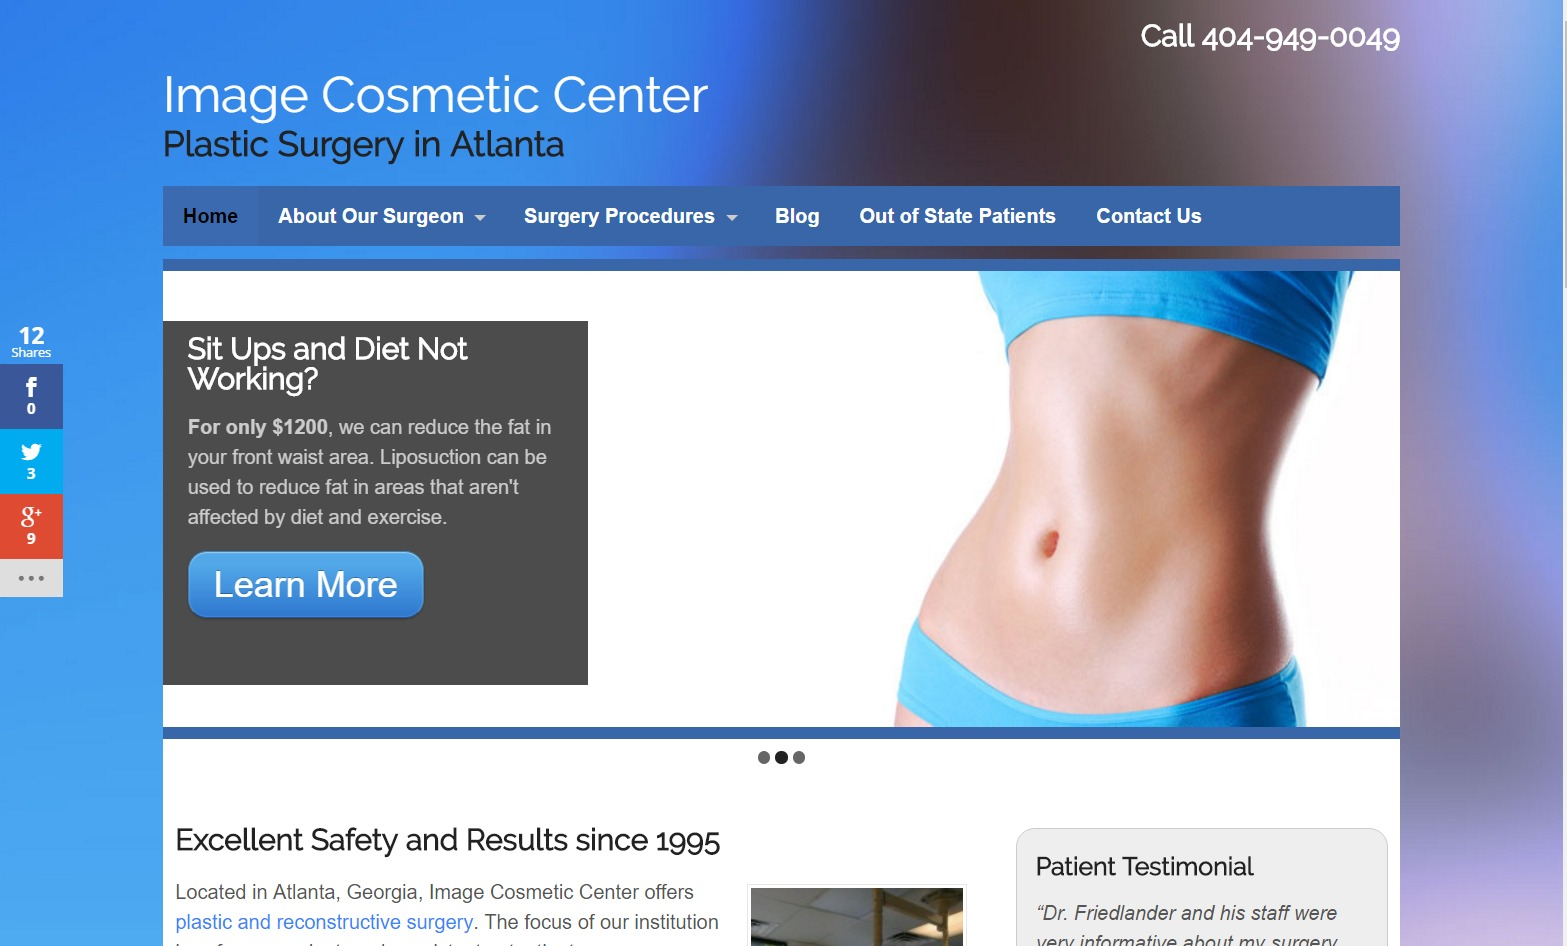 Image Cosmetic Center (Atlanta, GA) Web Design Project